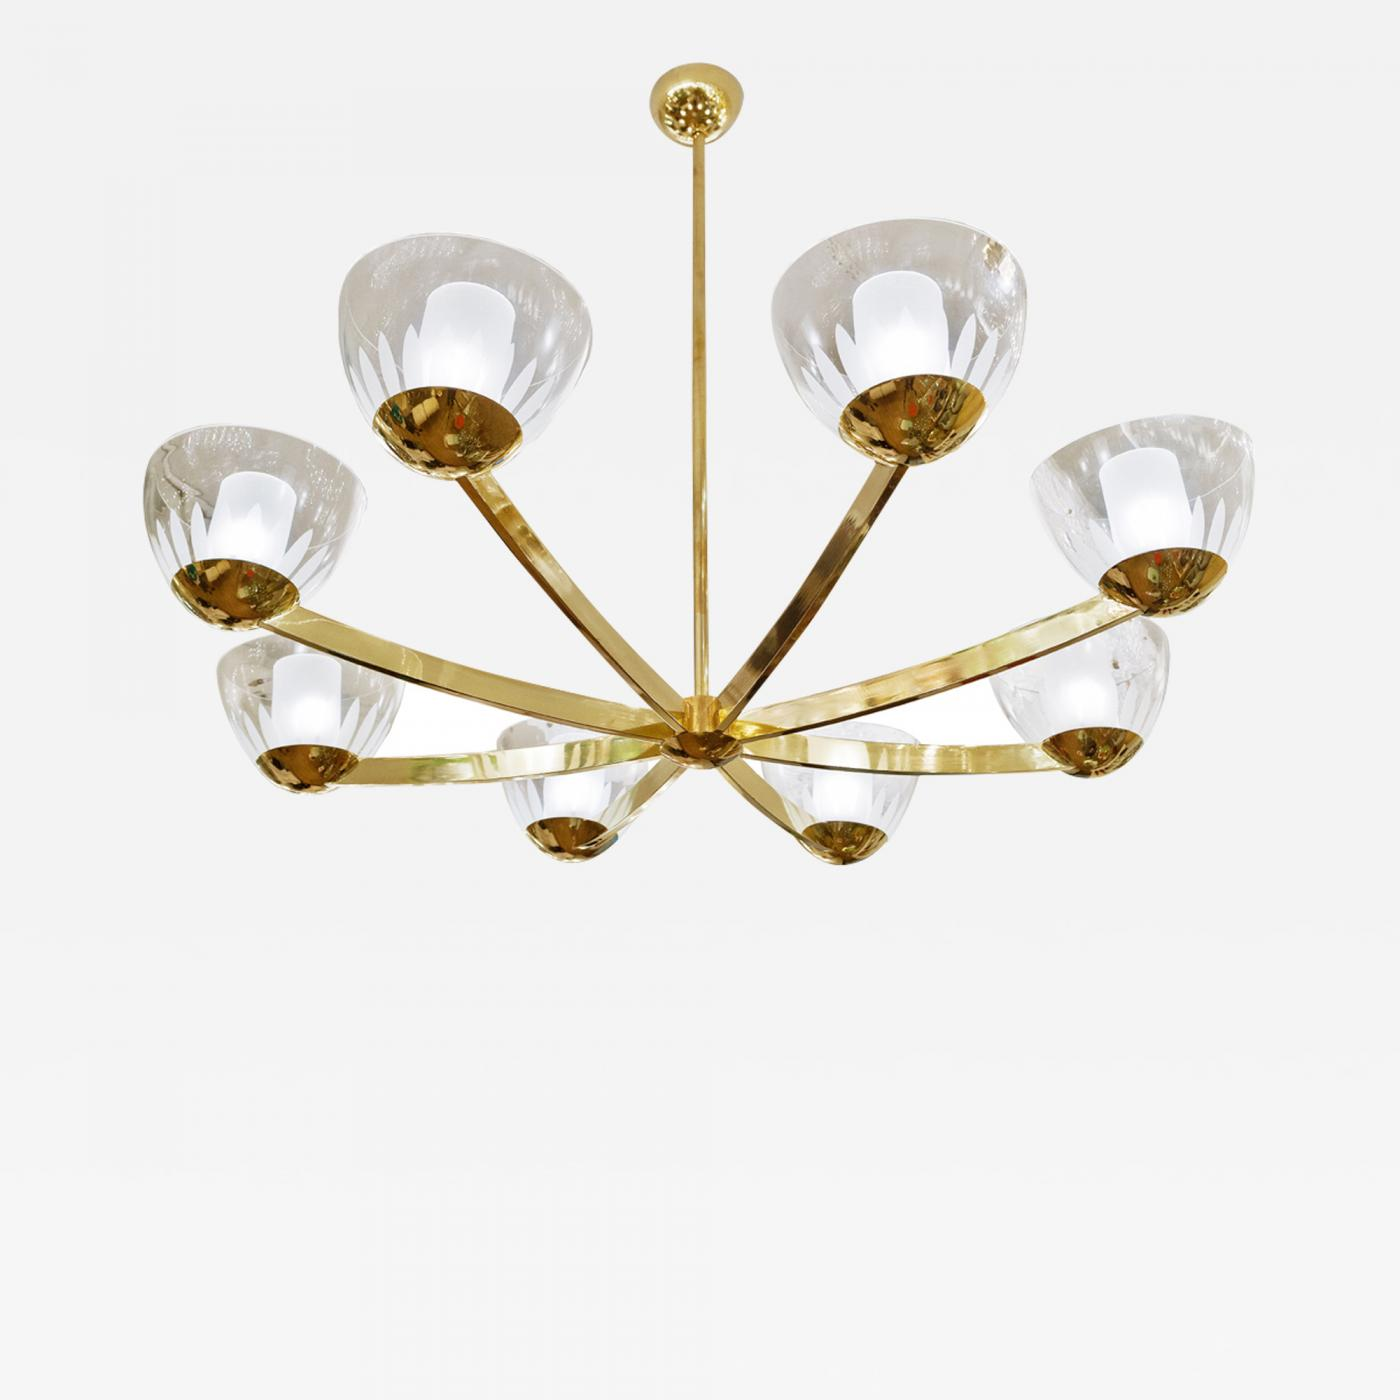 Large italian brass 8 arm chandelier glass bobeches wfrosted listings furniture lighting chandeliers and pendants aloadofball Choice Image